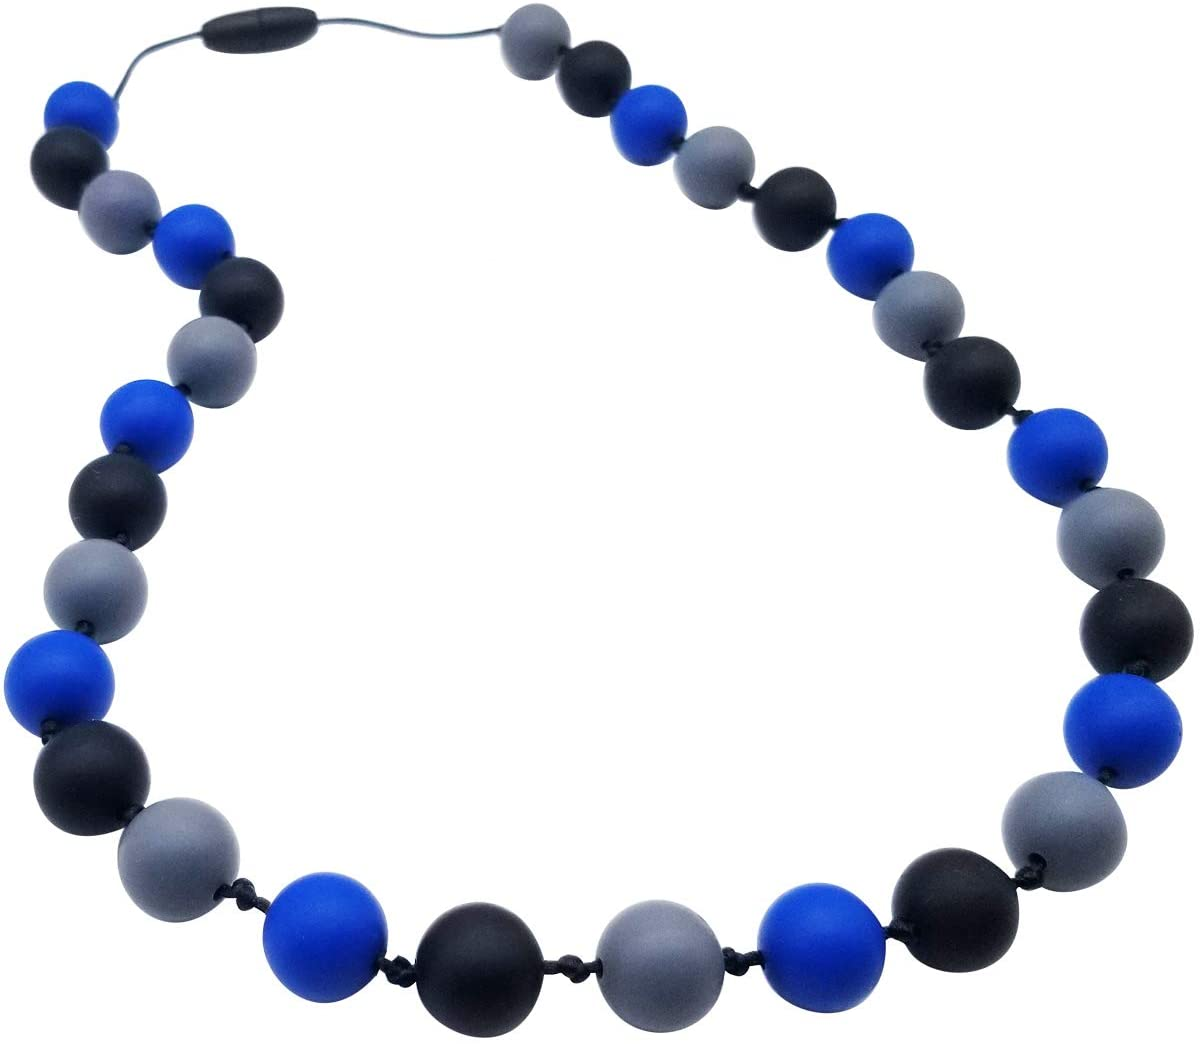 Sensory Chew Necklace for Kids, Boys - Chewing Necklace Teething Necklace Teether Necklace Chew Toys - Teething Toys Designed for Chewing, Autism, Autism Sensory Teether Toy